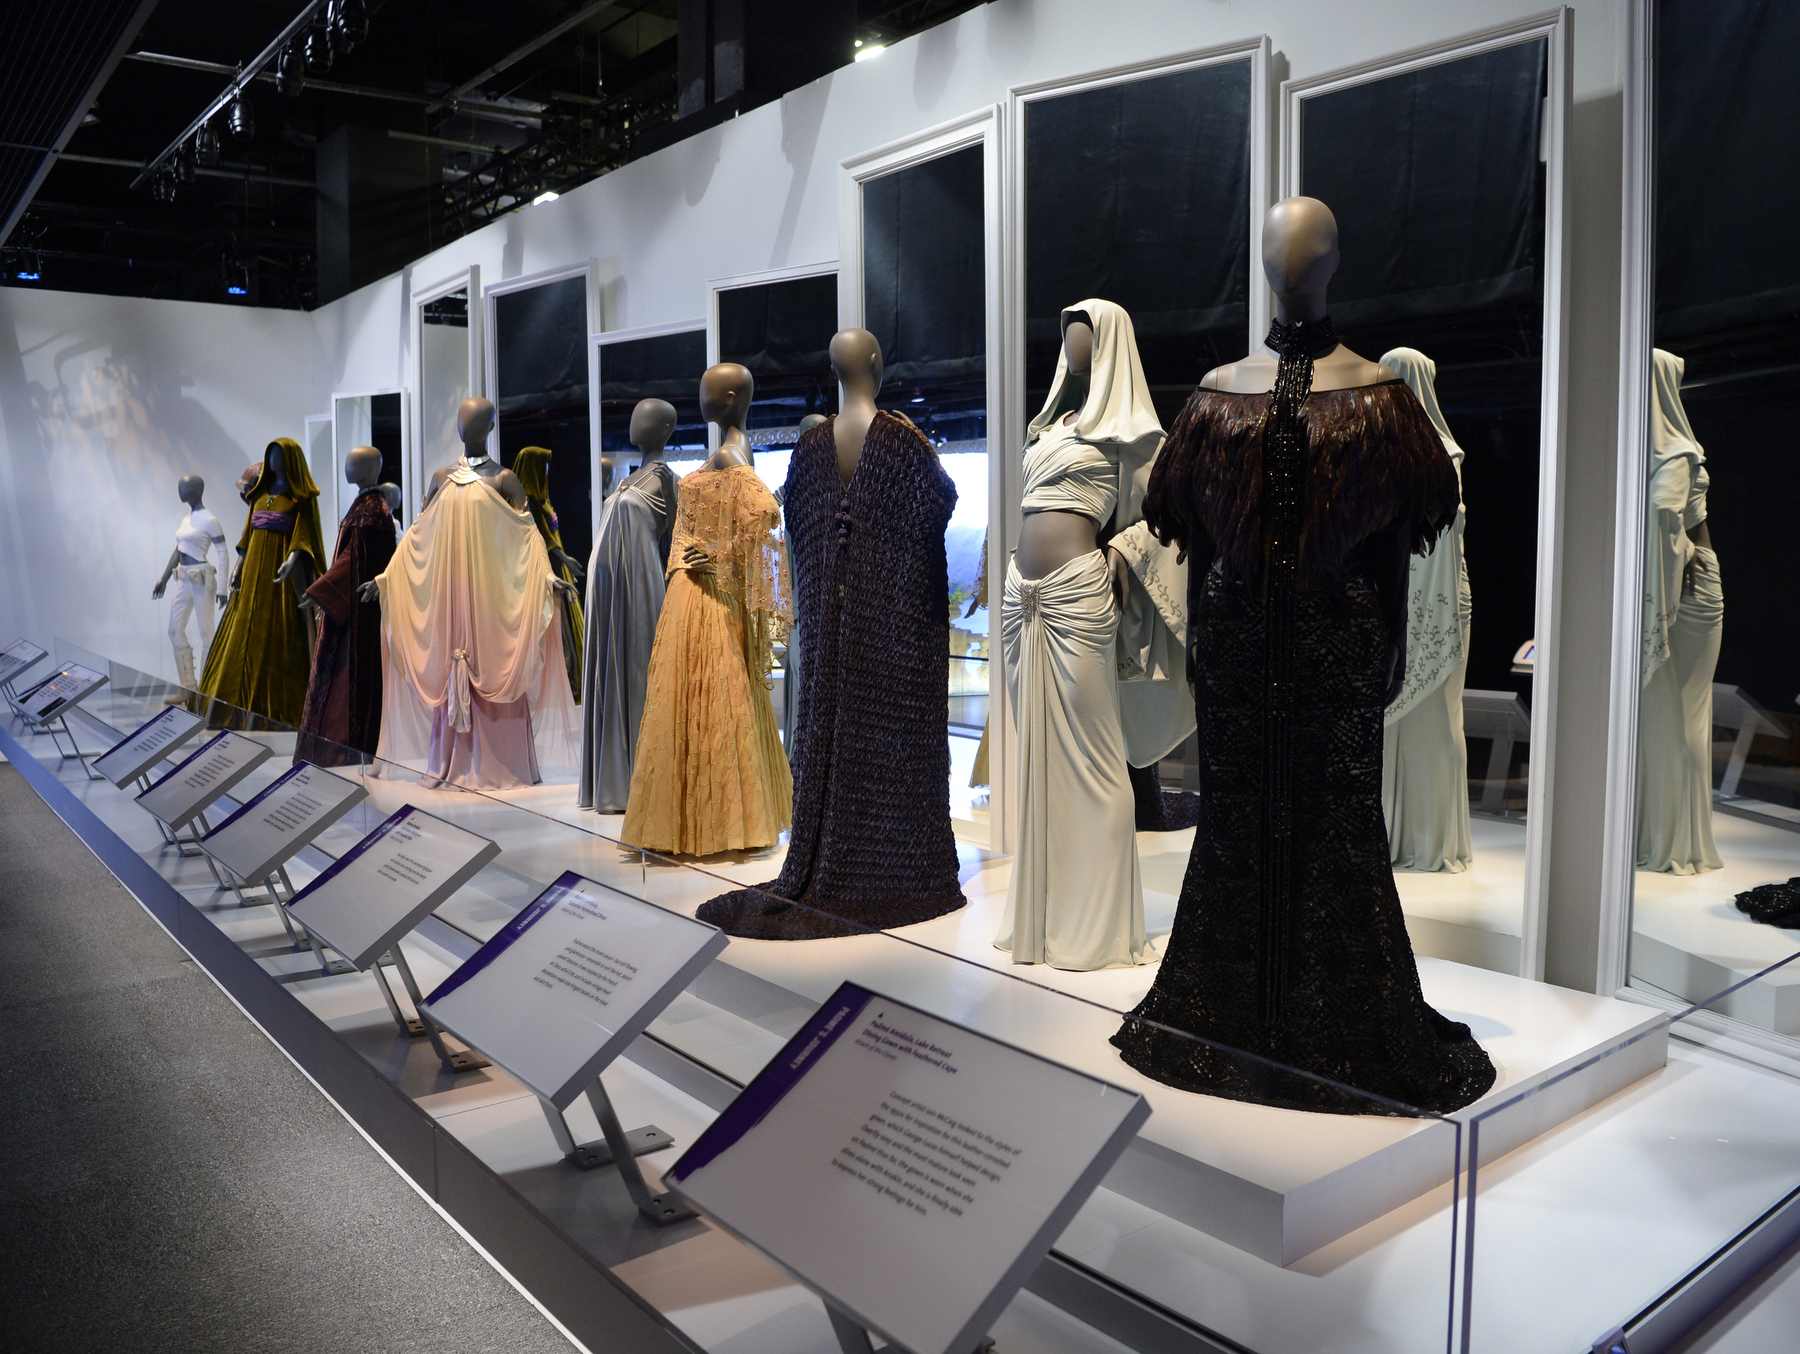 Review Star Wars™ and the Power of Costume The Exhibition